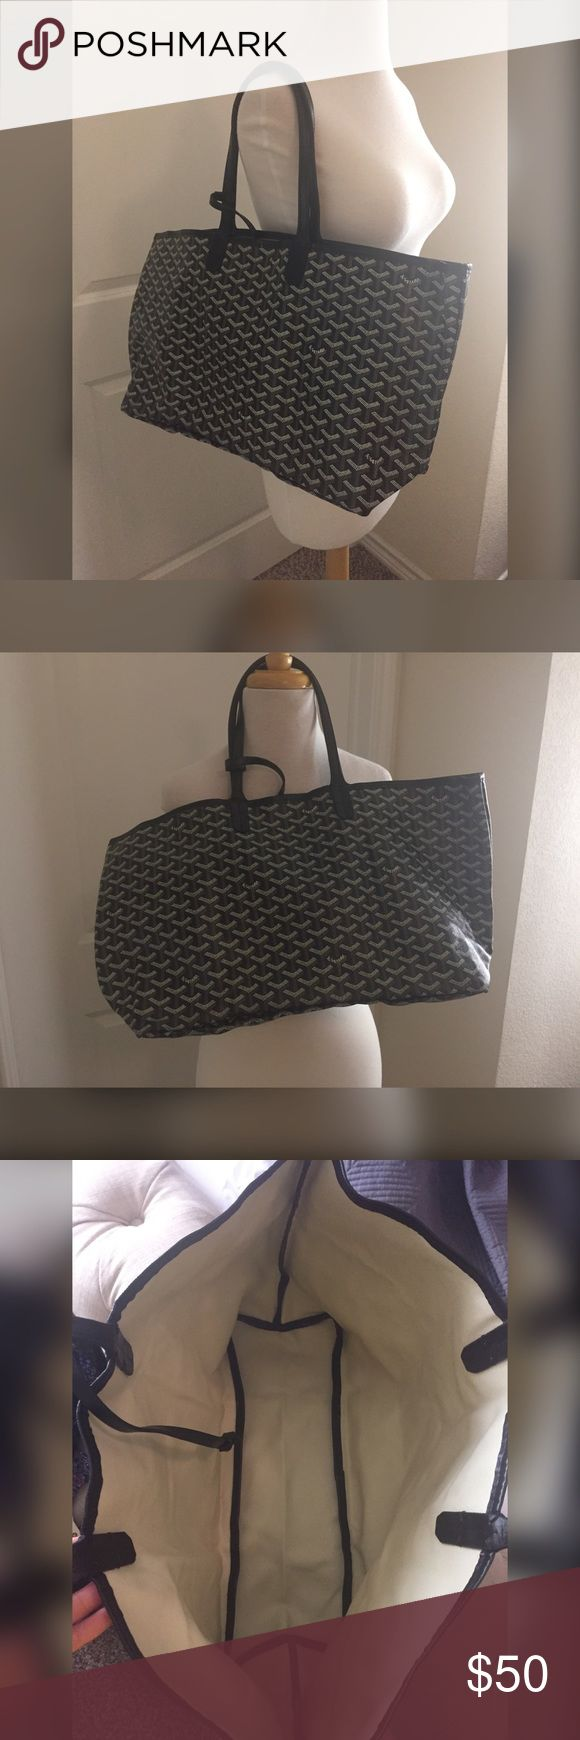 St Louis handbag E Goyard St Louis handbag. Price reflects authenticity. Bought when I went to China  does not come with attached pouchette. The string to attach is still on the bag so you could attach another one or something else like keys etc. Let me know if you have any questions  open to offers Bags